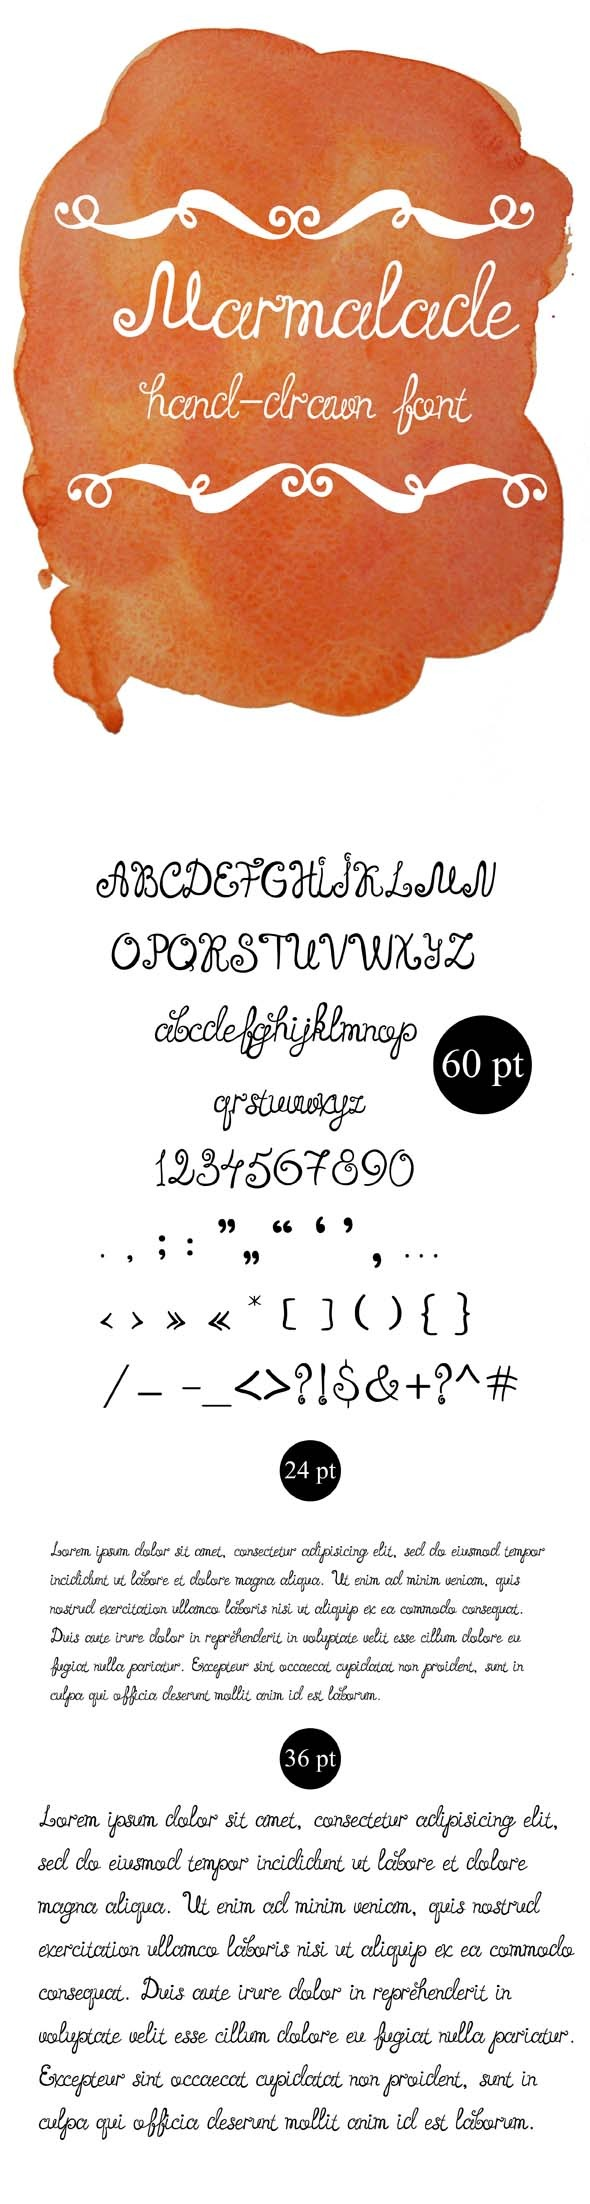 GraphicRiver Marmalade Hand-Written Font 10367032